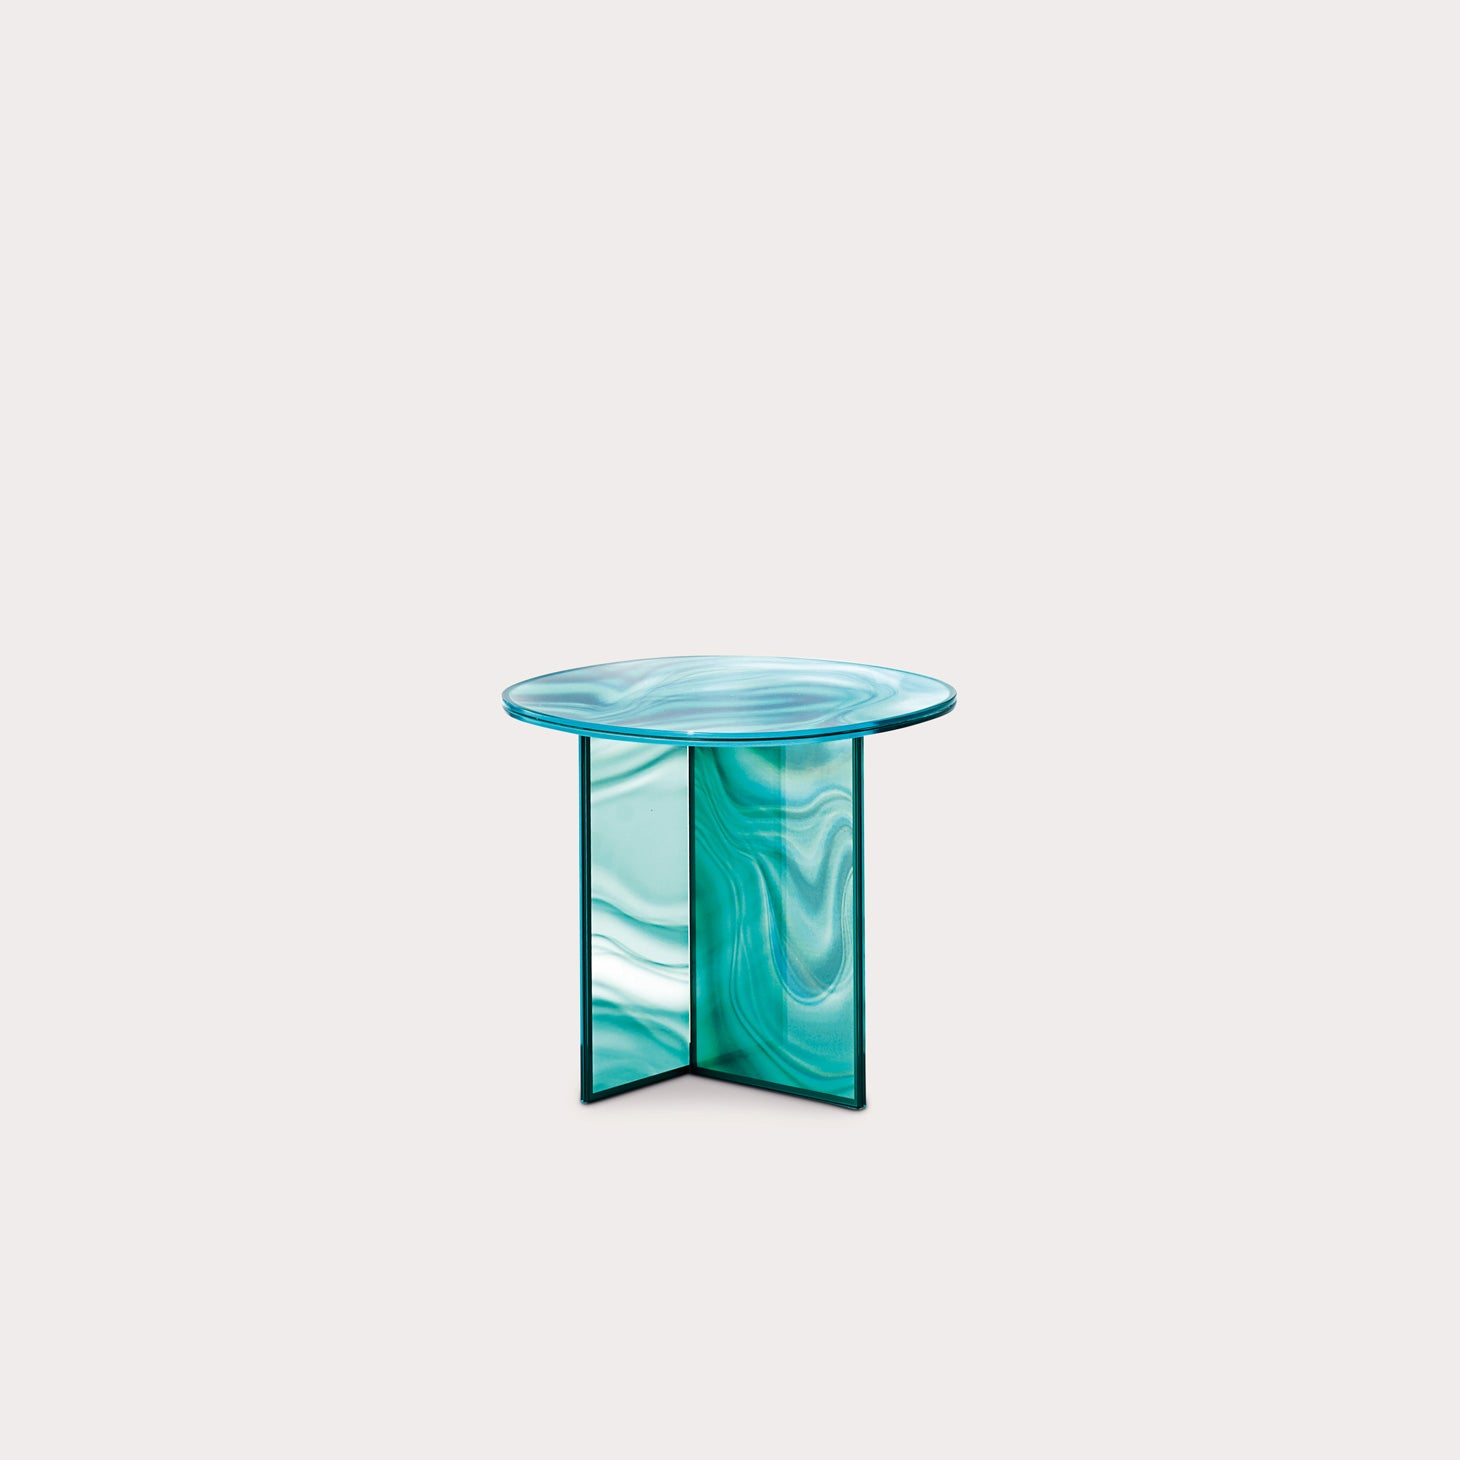 Liquefy Side Table Tables Patricia Urquiola Designer Furniture Sku: 288-230-10259